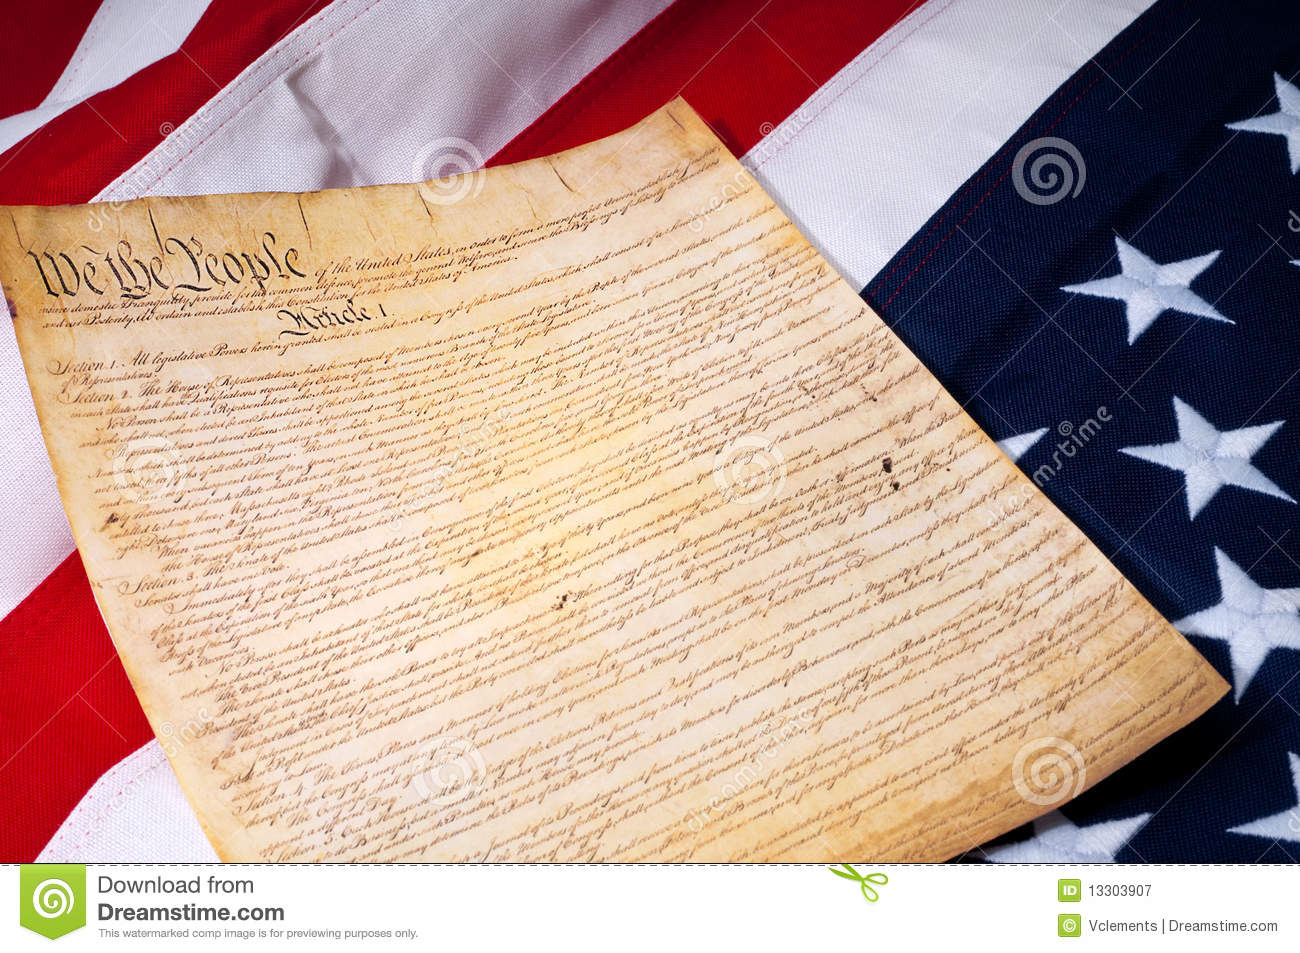 the first constitution The constitution first vests all federal legislative powers in a representative bicameral congress central to the social compact, this lawmaking institution forms the foundation of the federal government and allows the people's representatives to act together for the common good.